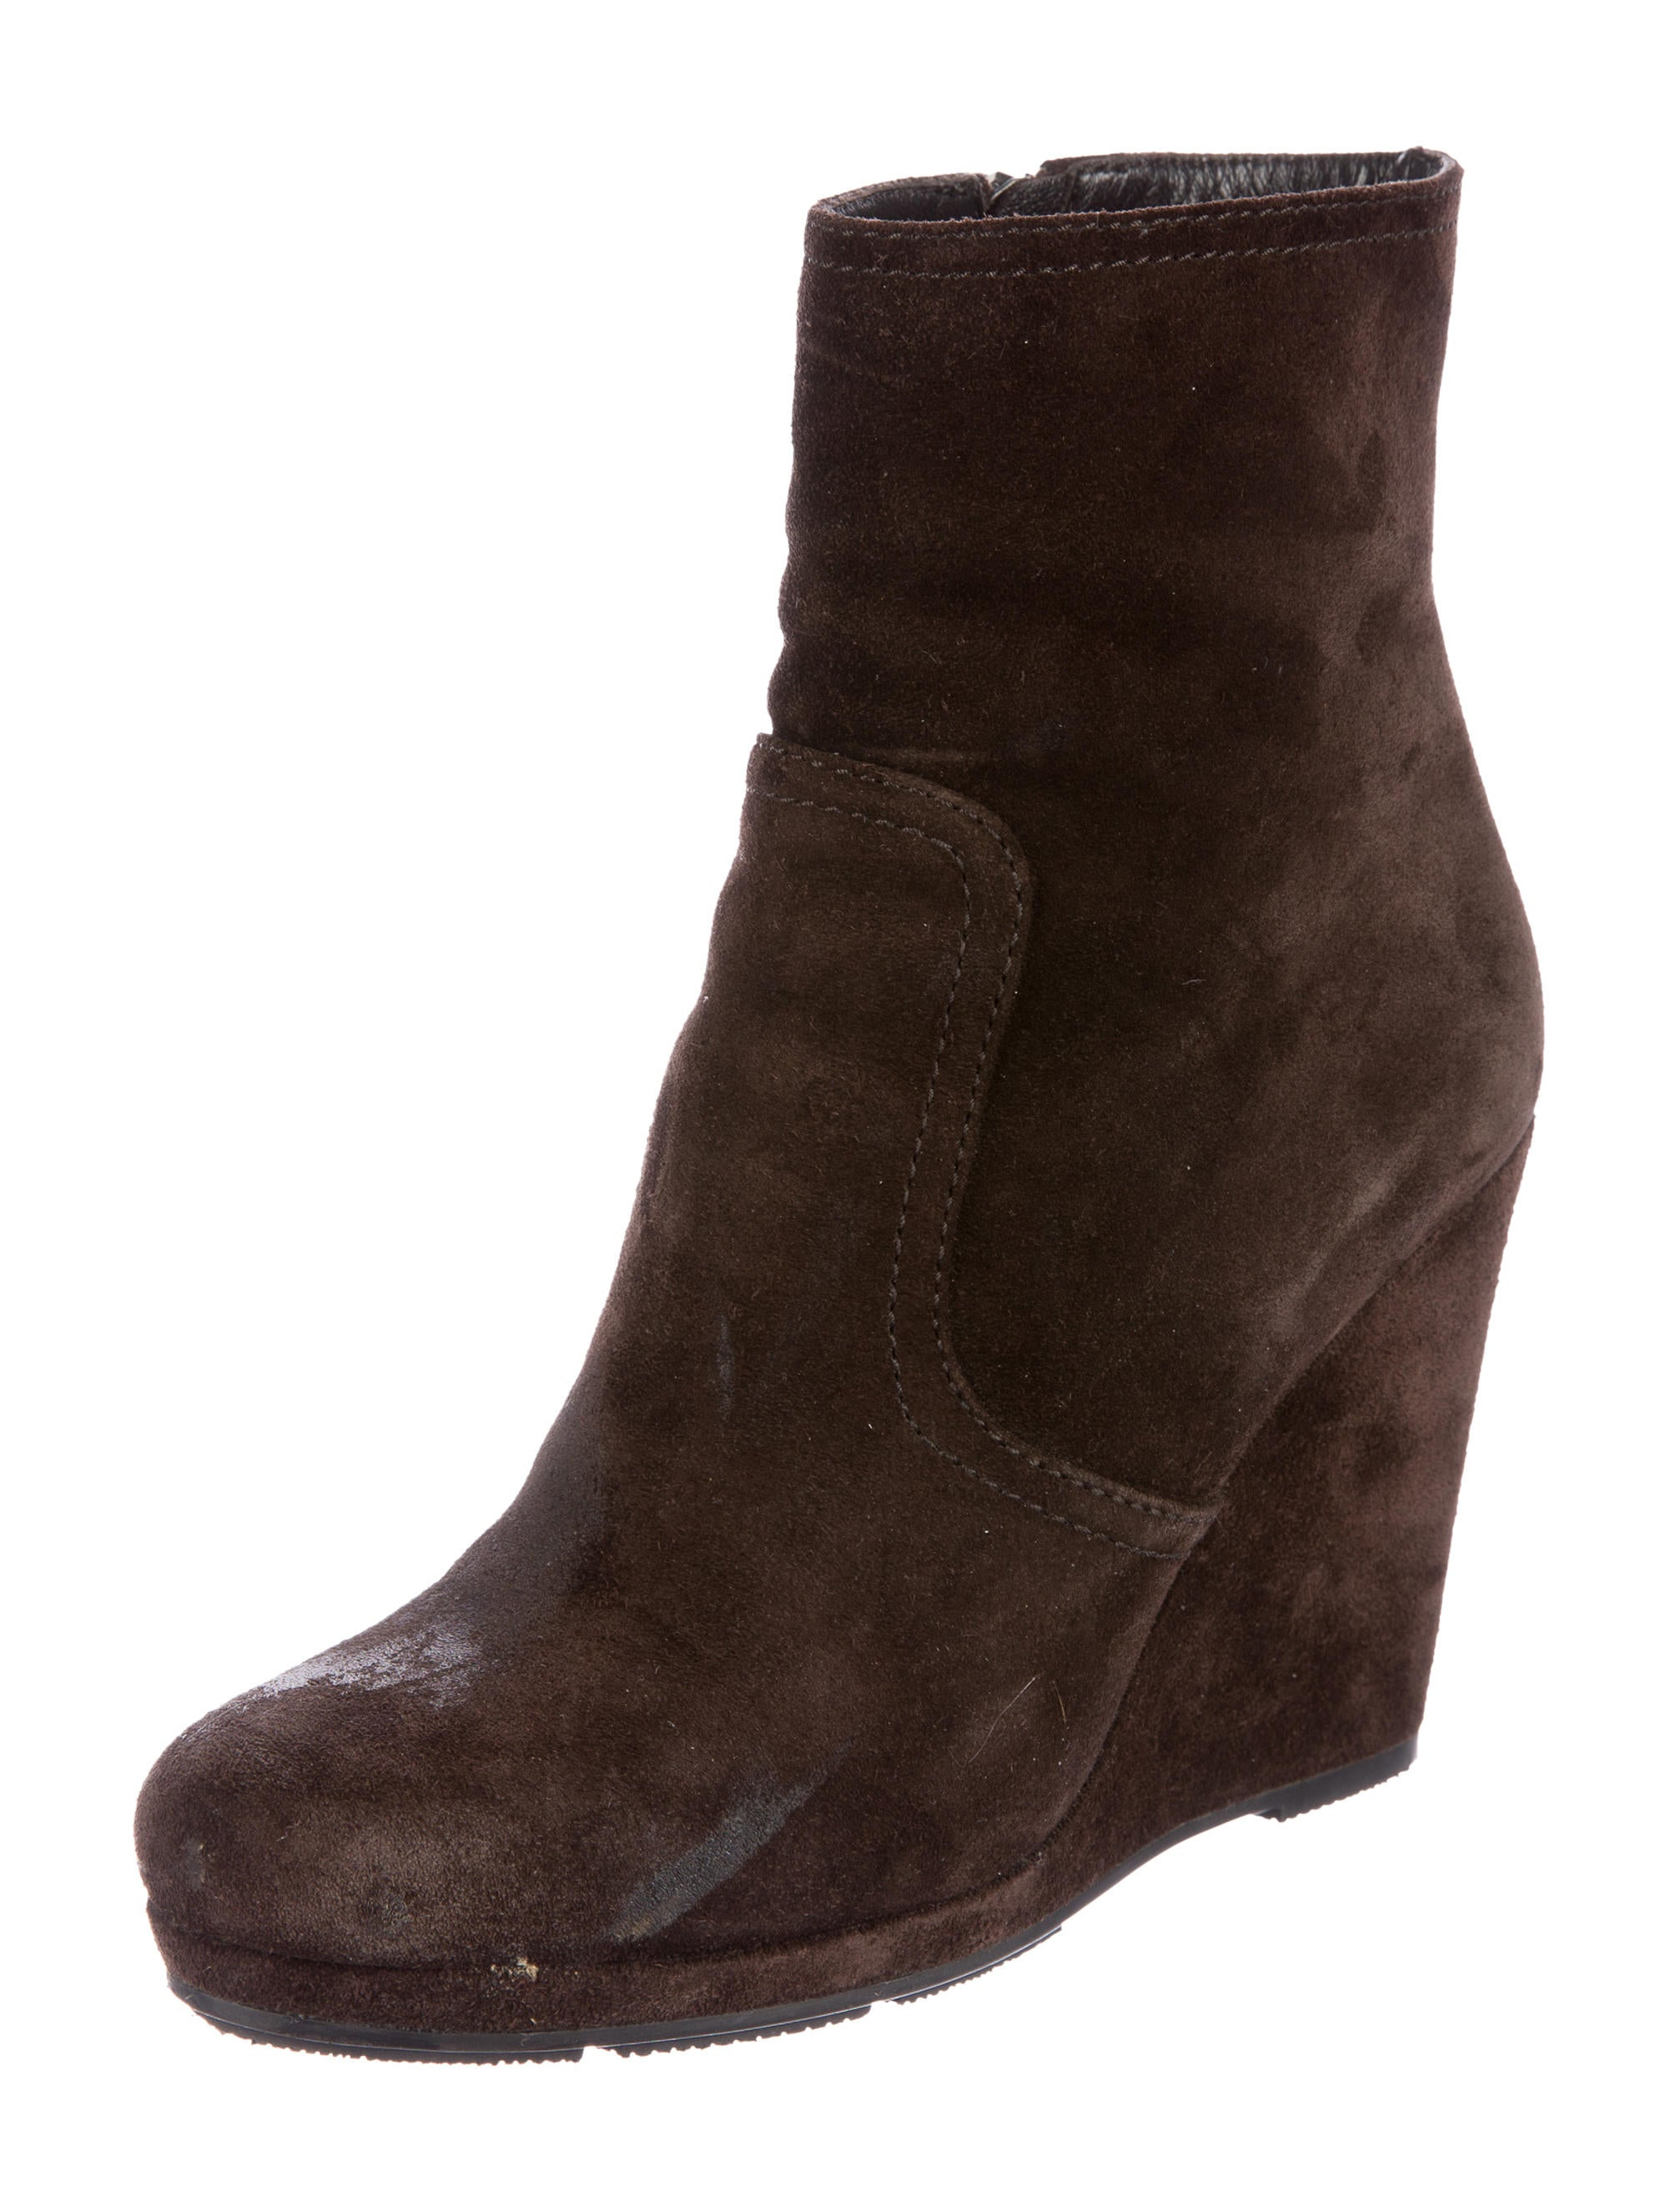 prada suede wedge ankle boots shoes pra134153 the